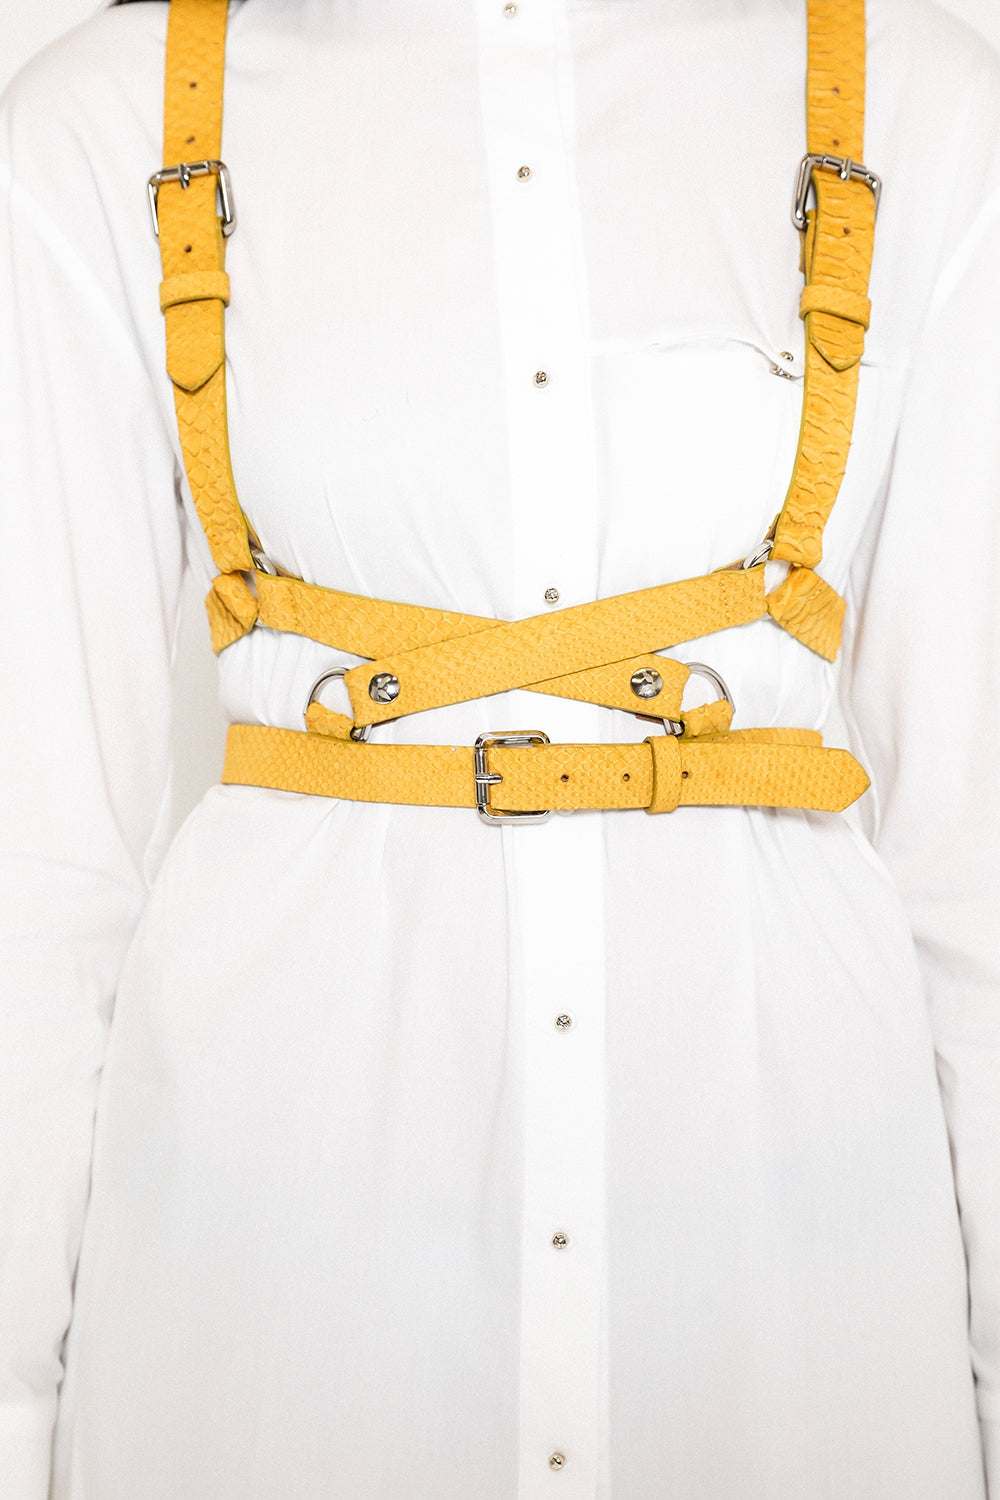 Python yellow cross body harness in leather with silver metal trims